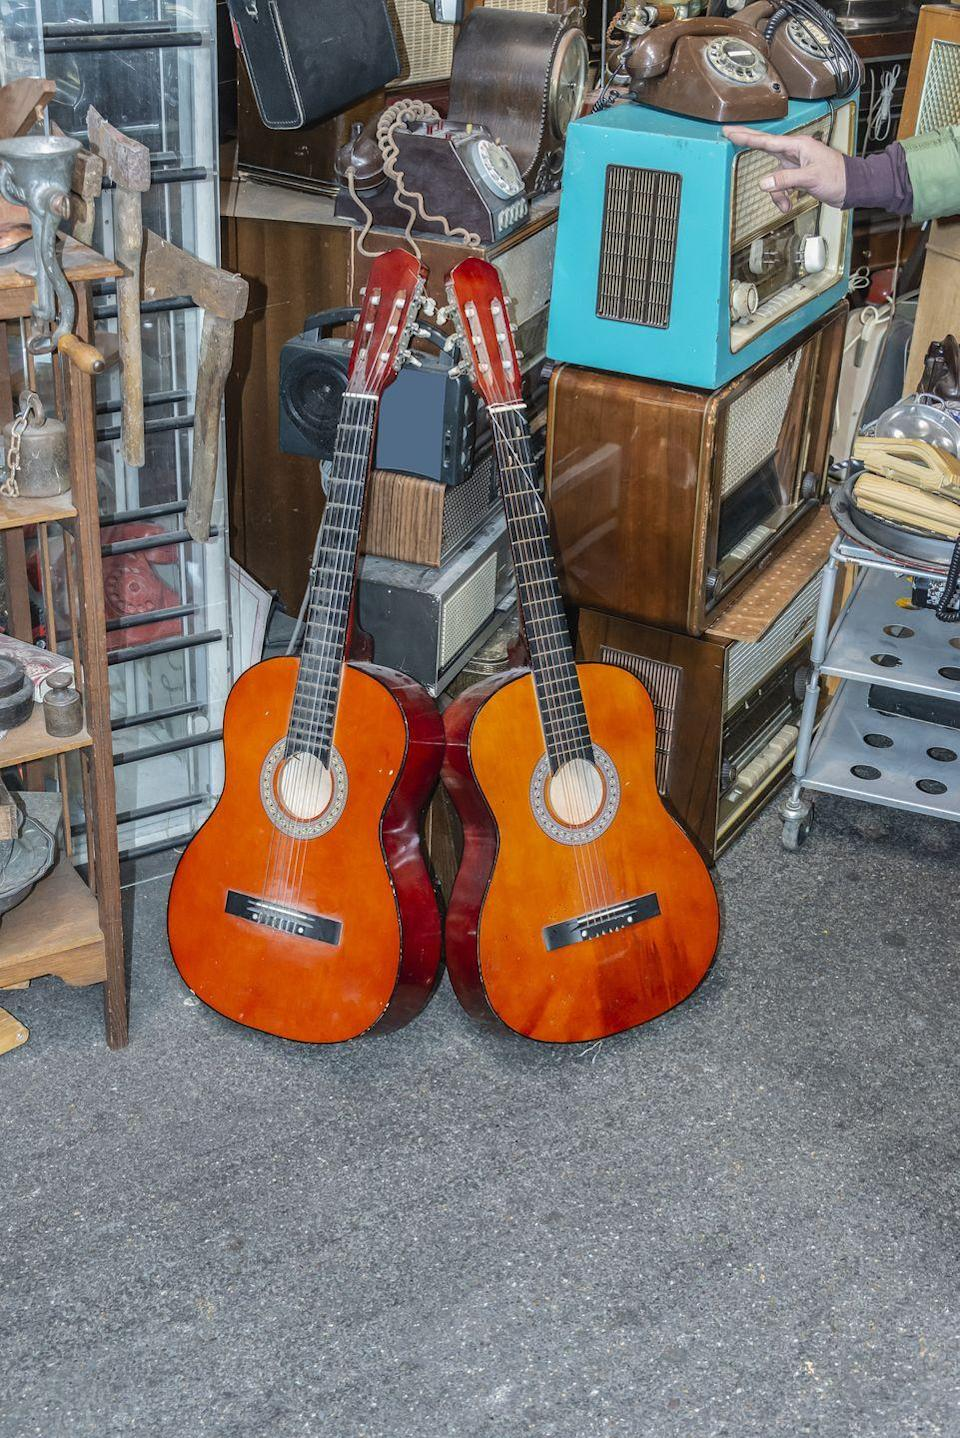 "<p>Whether or not you can play a lick, buying that old axe sitting in the corner of the garage sale can bring big returns. Used guitars from esteemed brands including Martin, Taylor, and Gibson can sell for thousands on sites like <a href=""https://reverb.com/price-guide/acoustic-guitars"" rel=""nofollow noopener"" target=""_blank"" data-ylk=""slk:Reverb"" class=""link rapid-noclick-resp"">Reverb</a>.</p>"